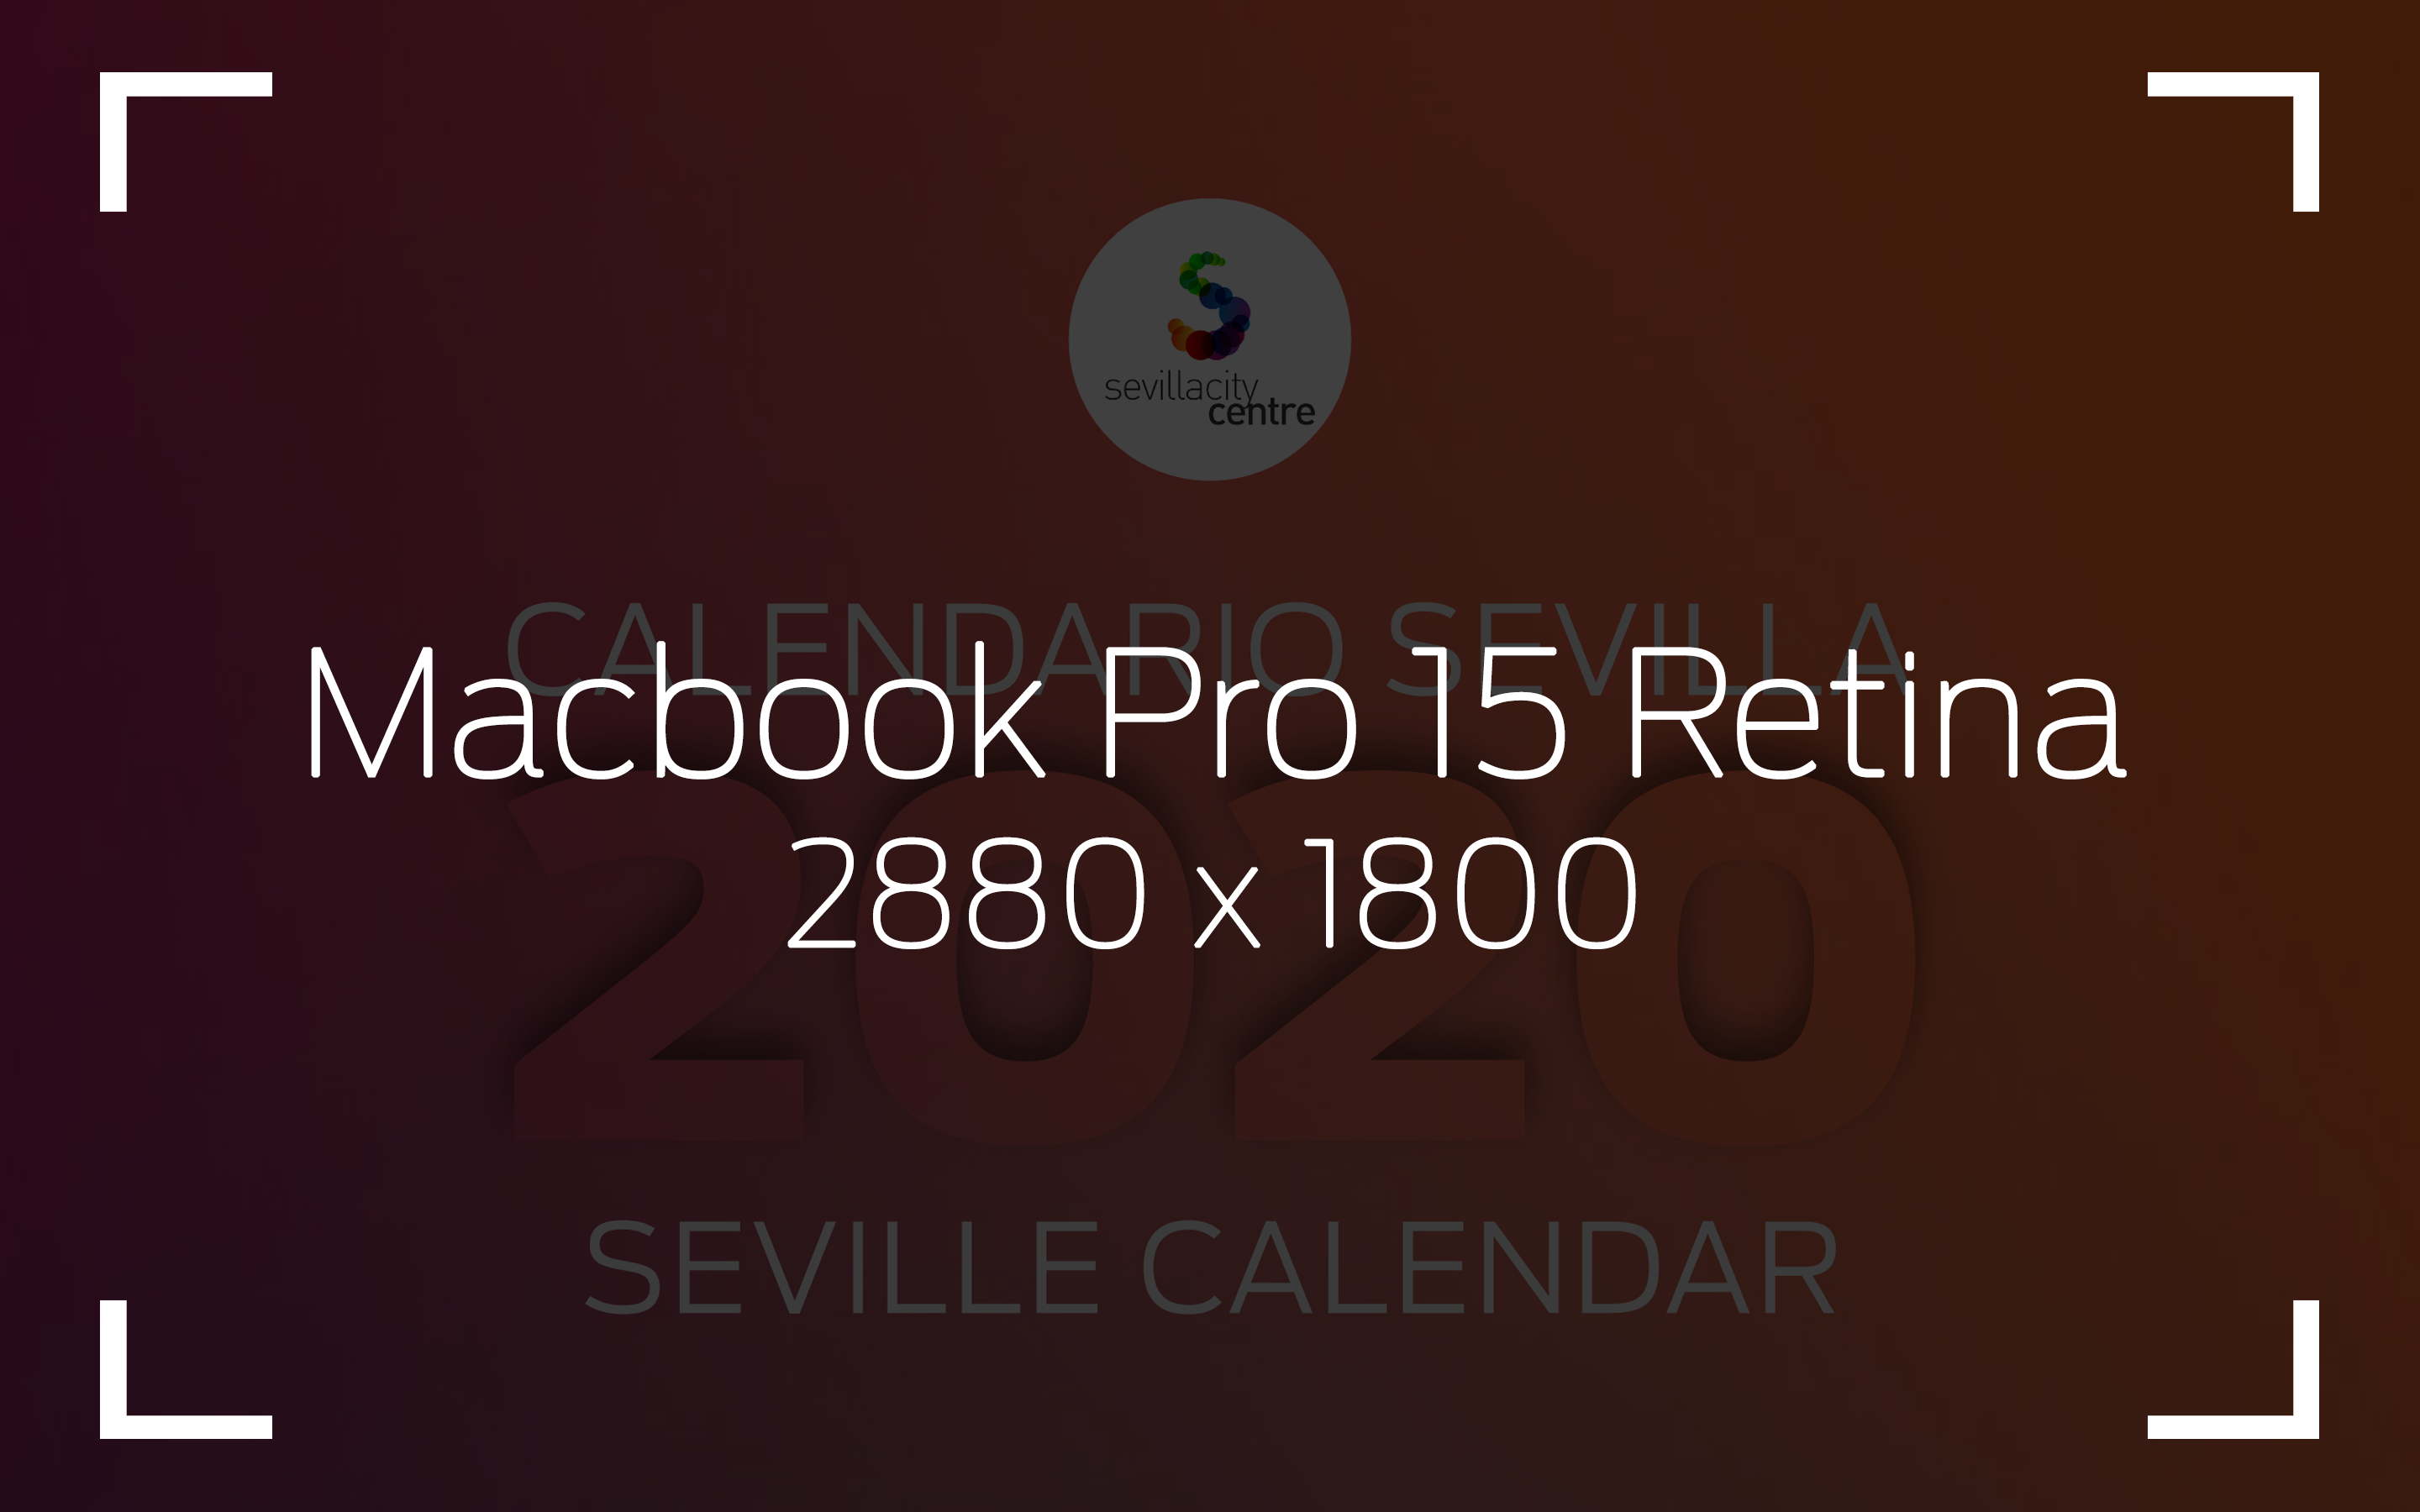 calendario sevilla city centre 2020 macbook pro 15 retina